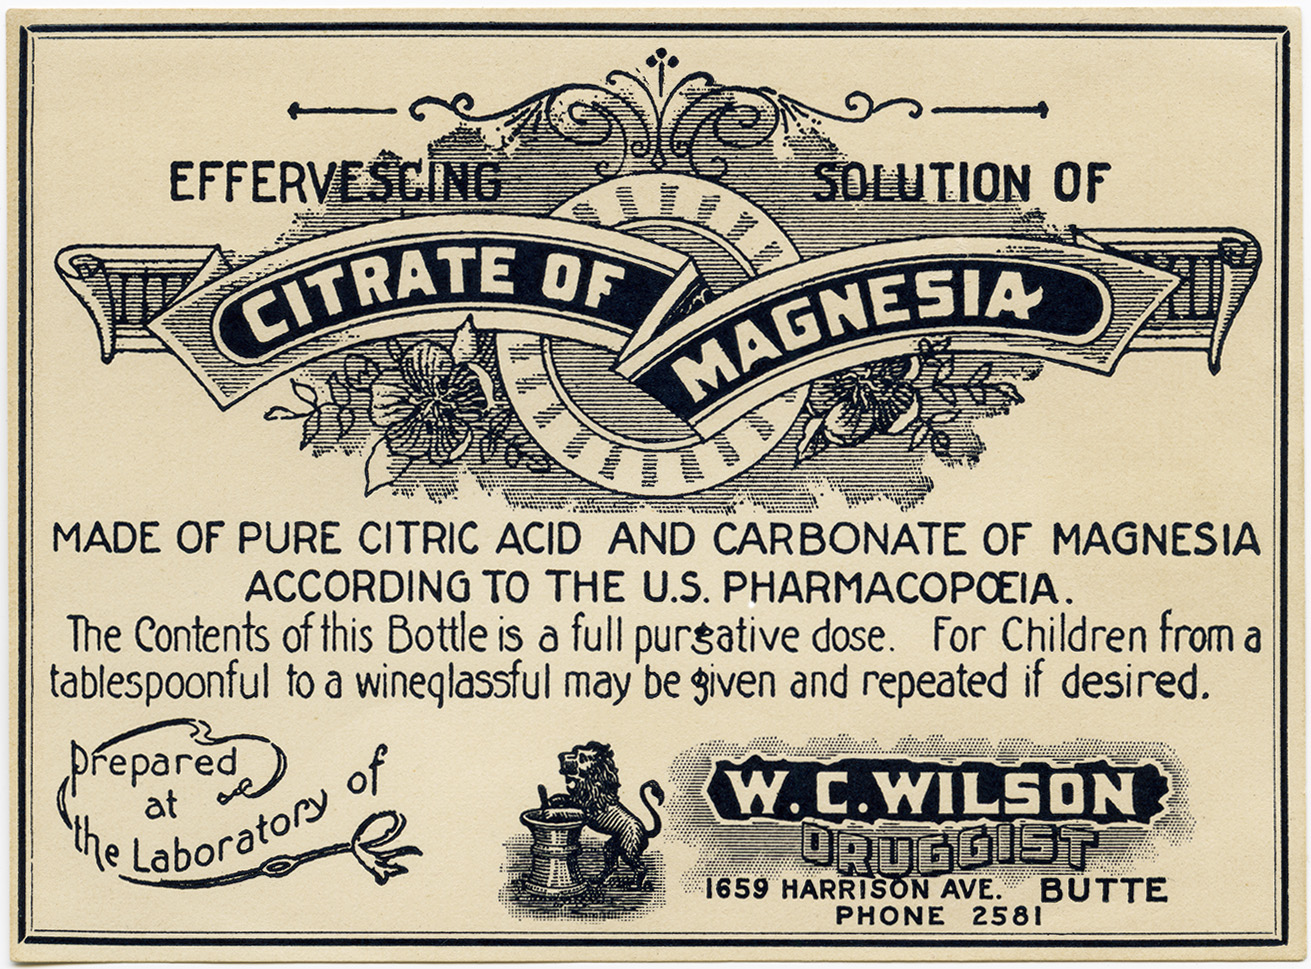 w c wilson druggist citrate of magnesia label old